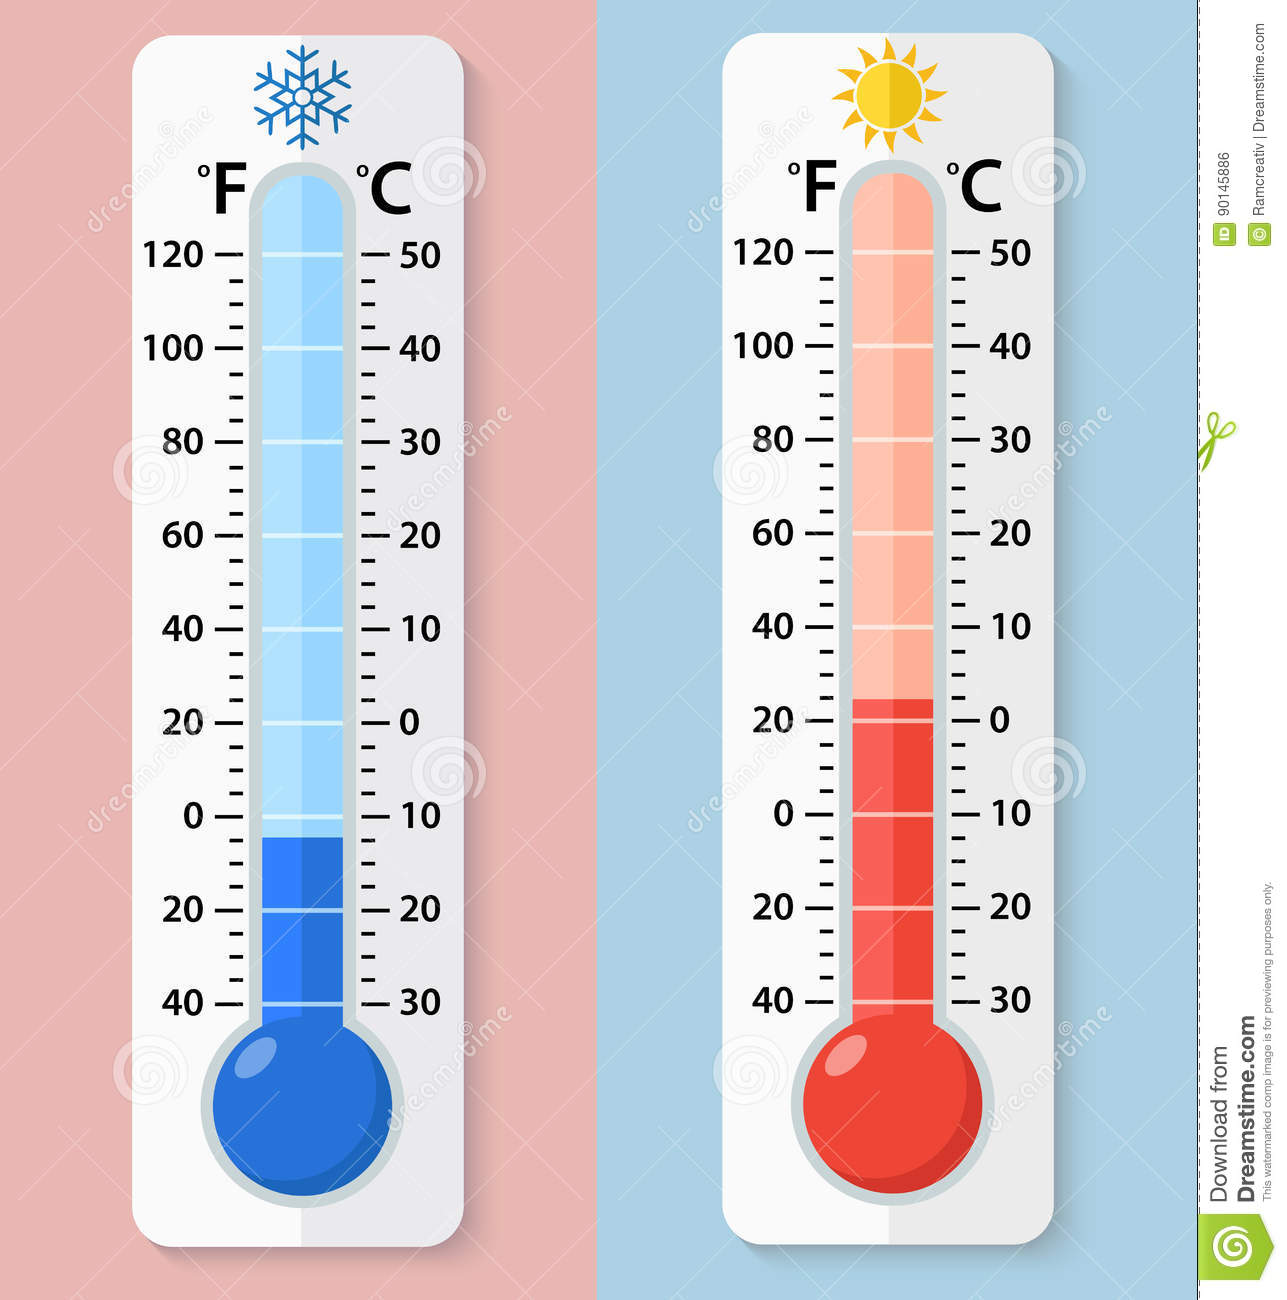 Thermometer Fahrenheit And Celsius For Measuring Heat And